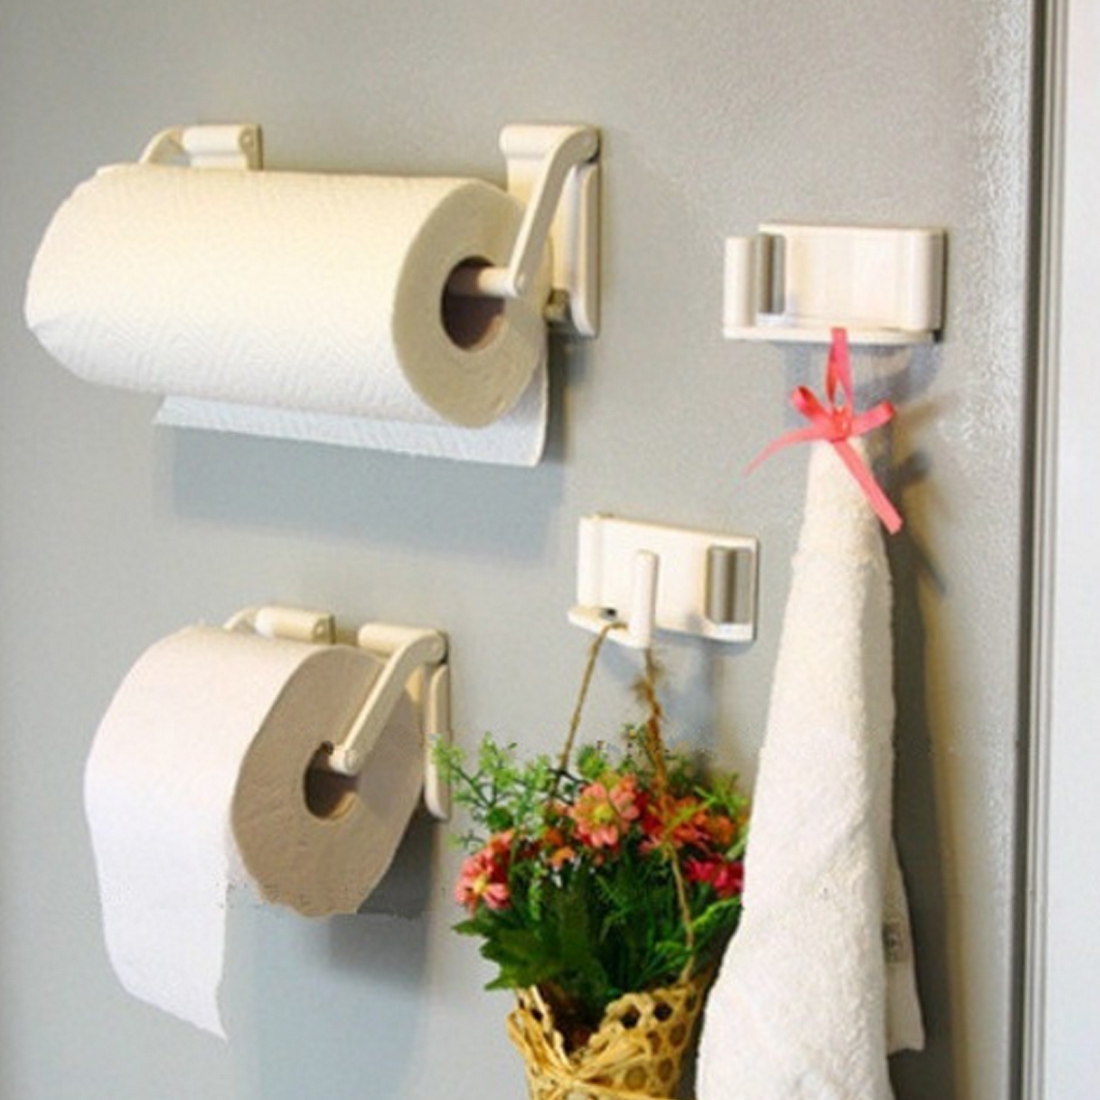 New Arrival Towel Rack Magnetic Paper Towel Oleopholic Roll Holder For Refrigerator Bathroom Accessories